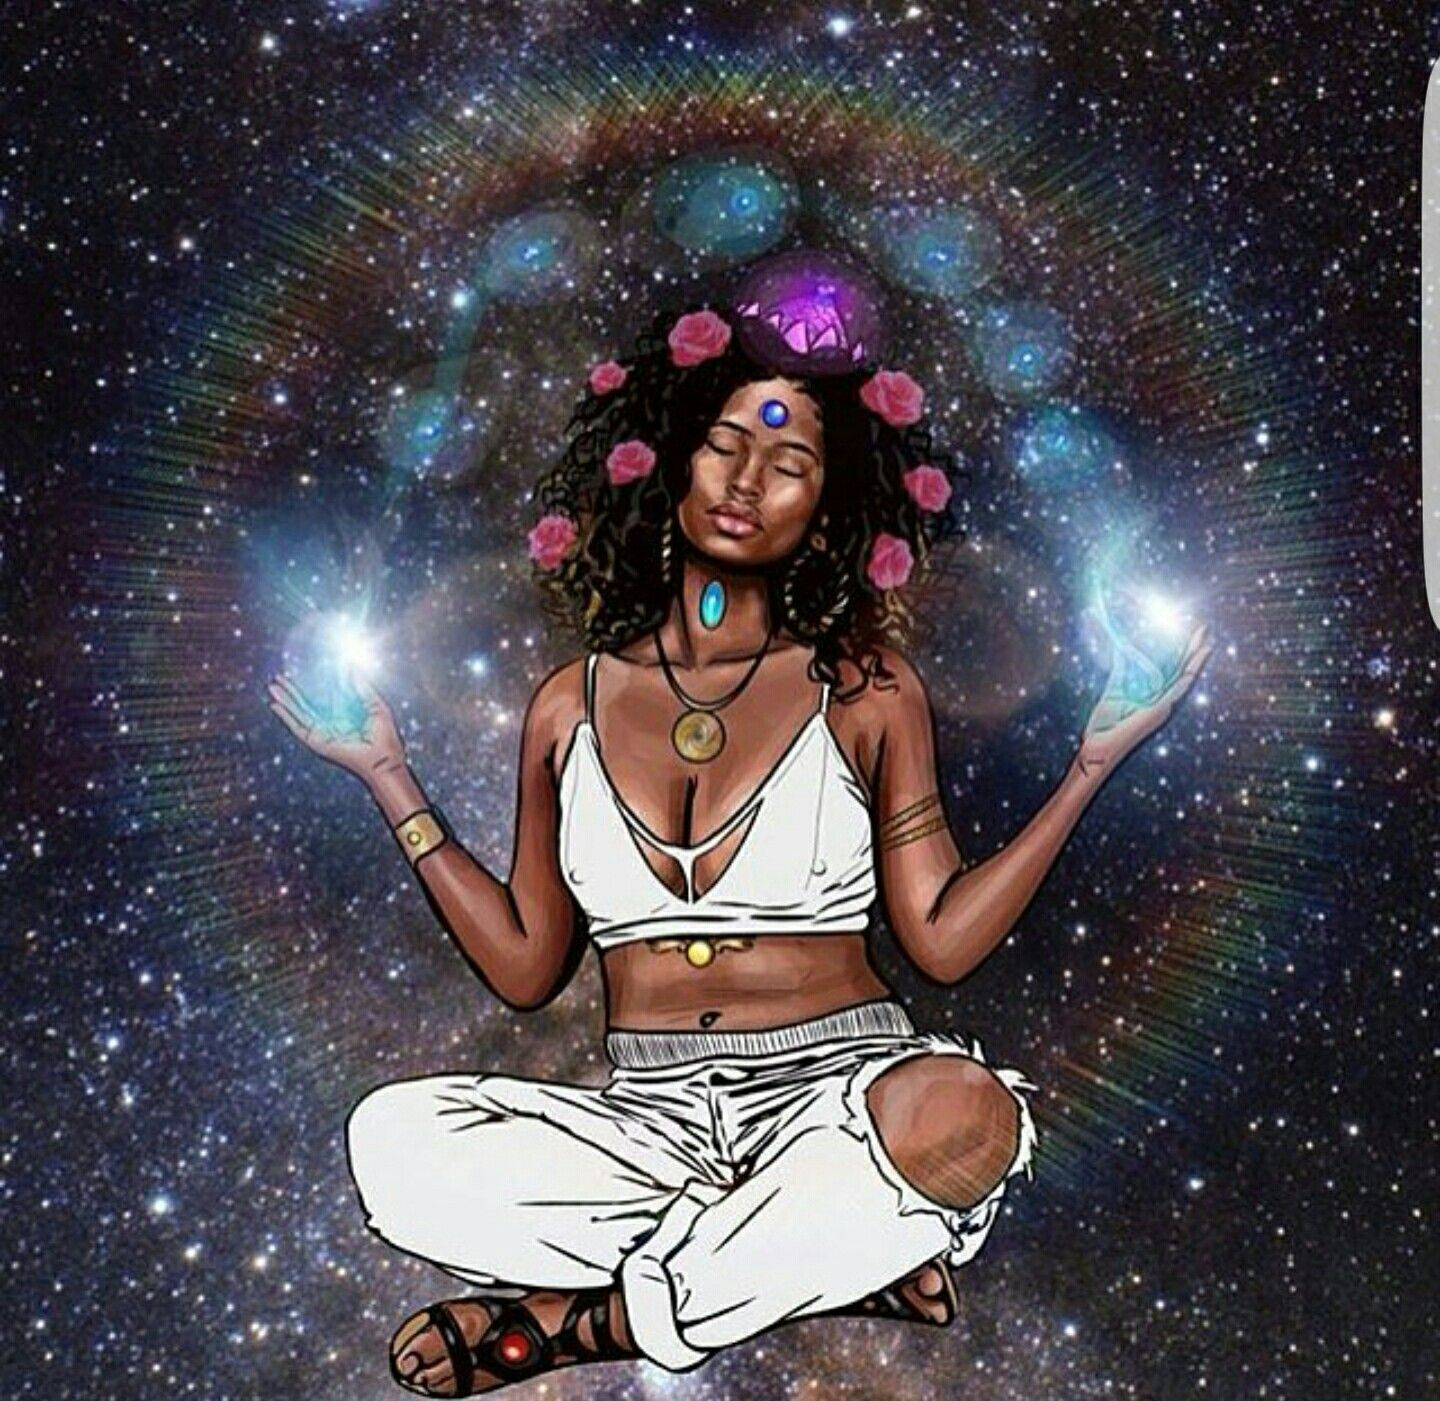 "You are sacred, magical and powerful beyond measure."" ~Abiola ..."